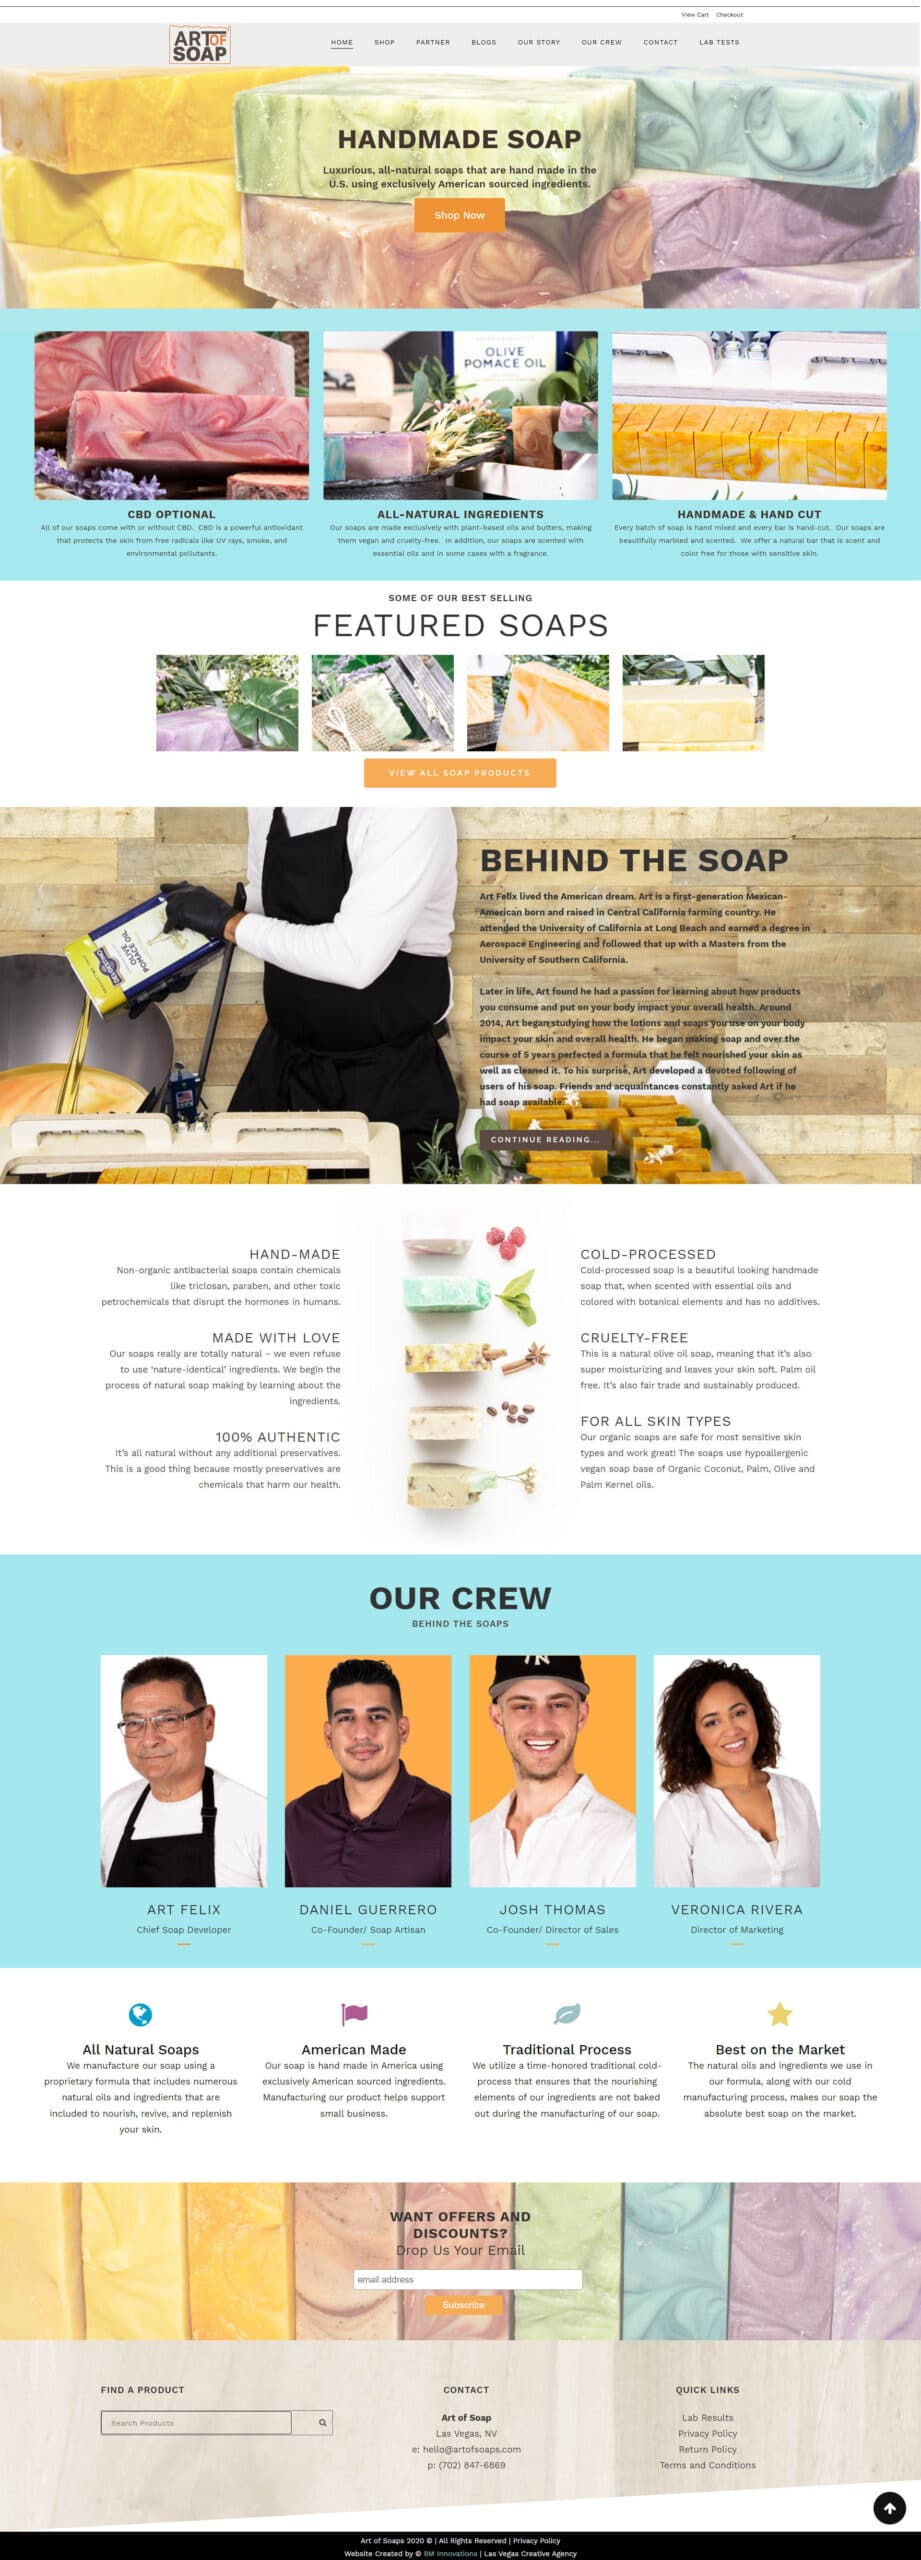 The art of soap homepage